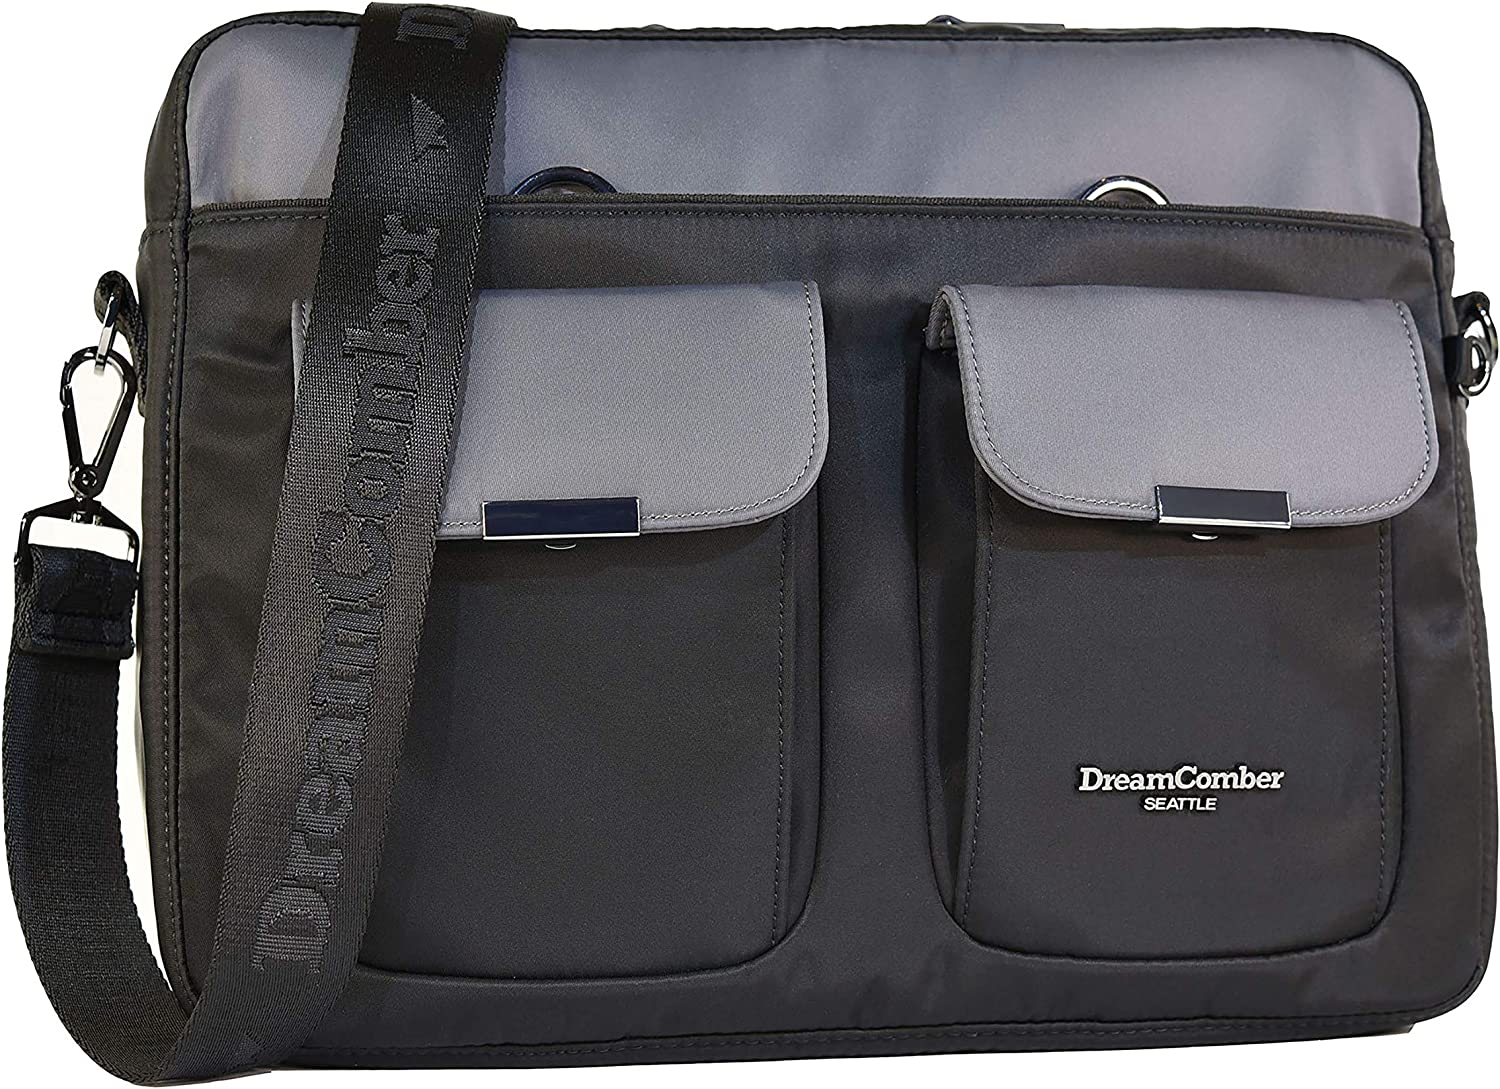 DreamComber City Traveler Collection Special Edition 13.5 inch Messenger Bag